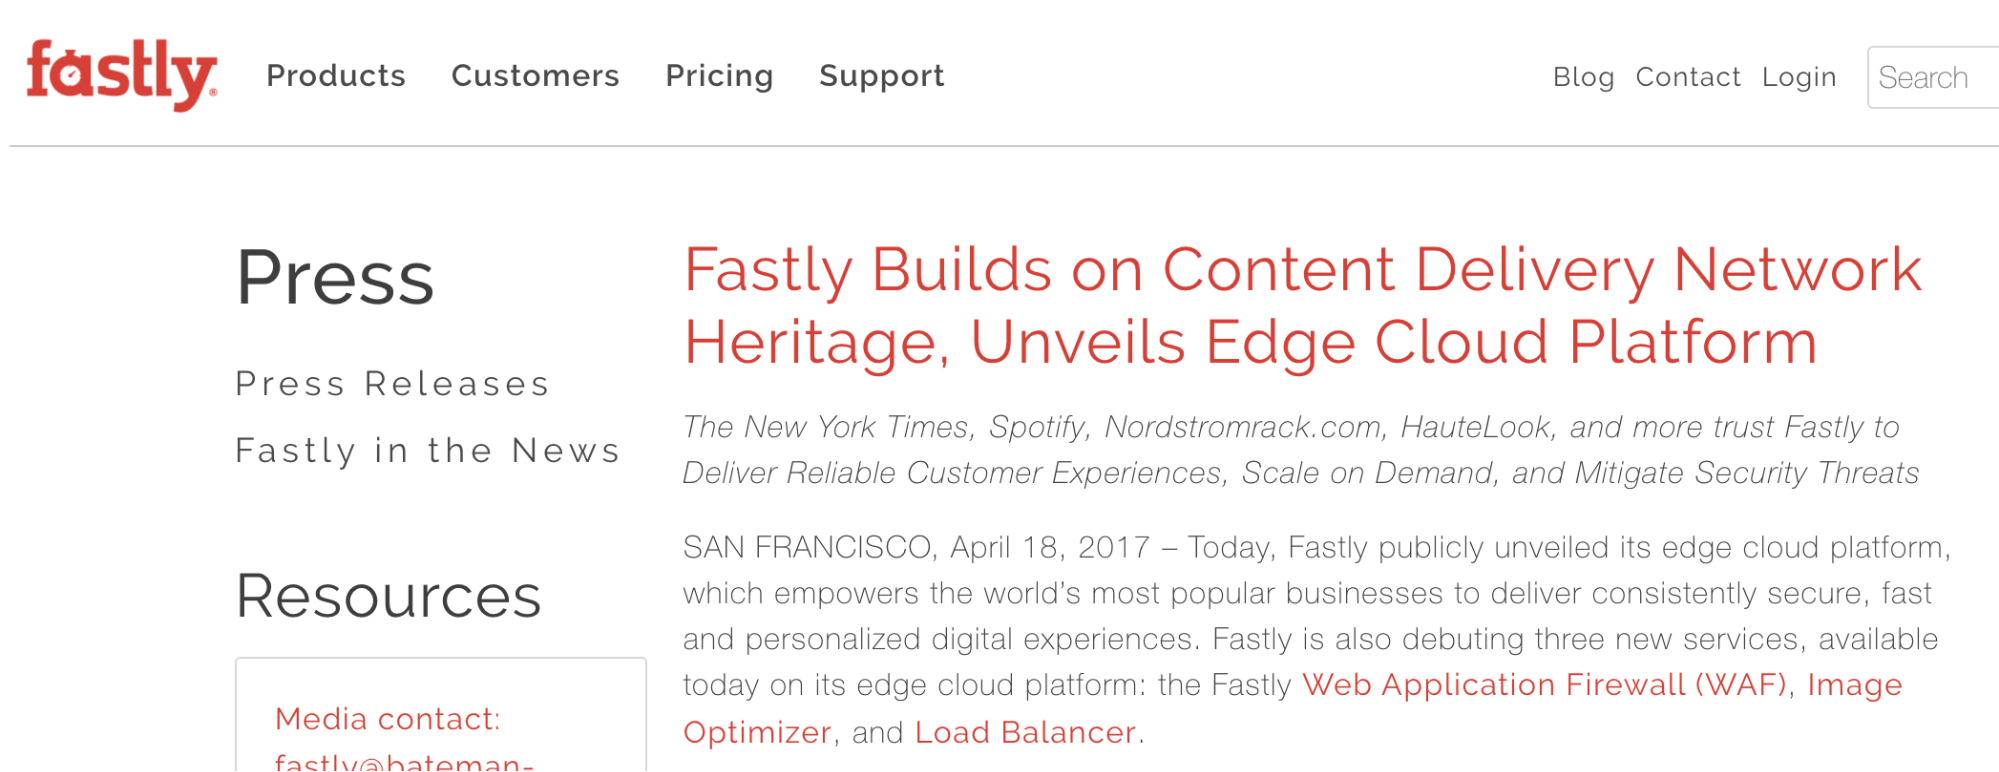 Announcement from Fastly about their Edge Cloud Platform category.